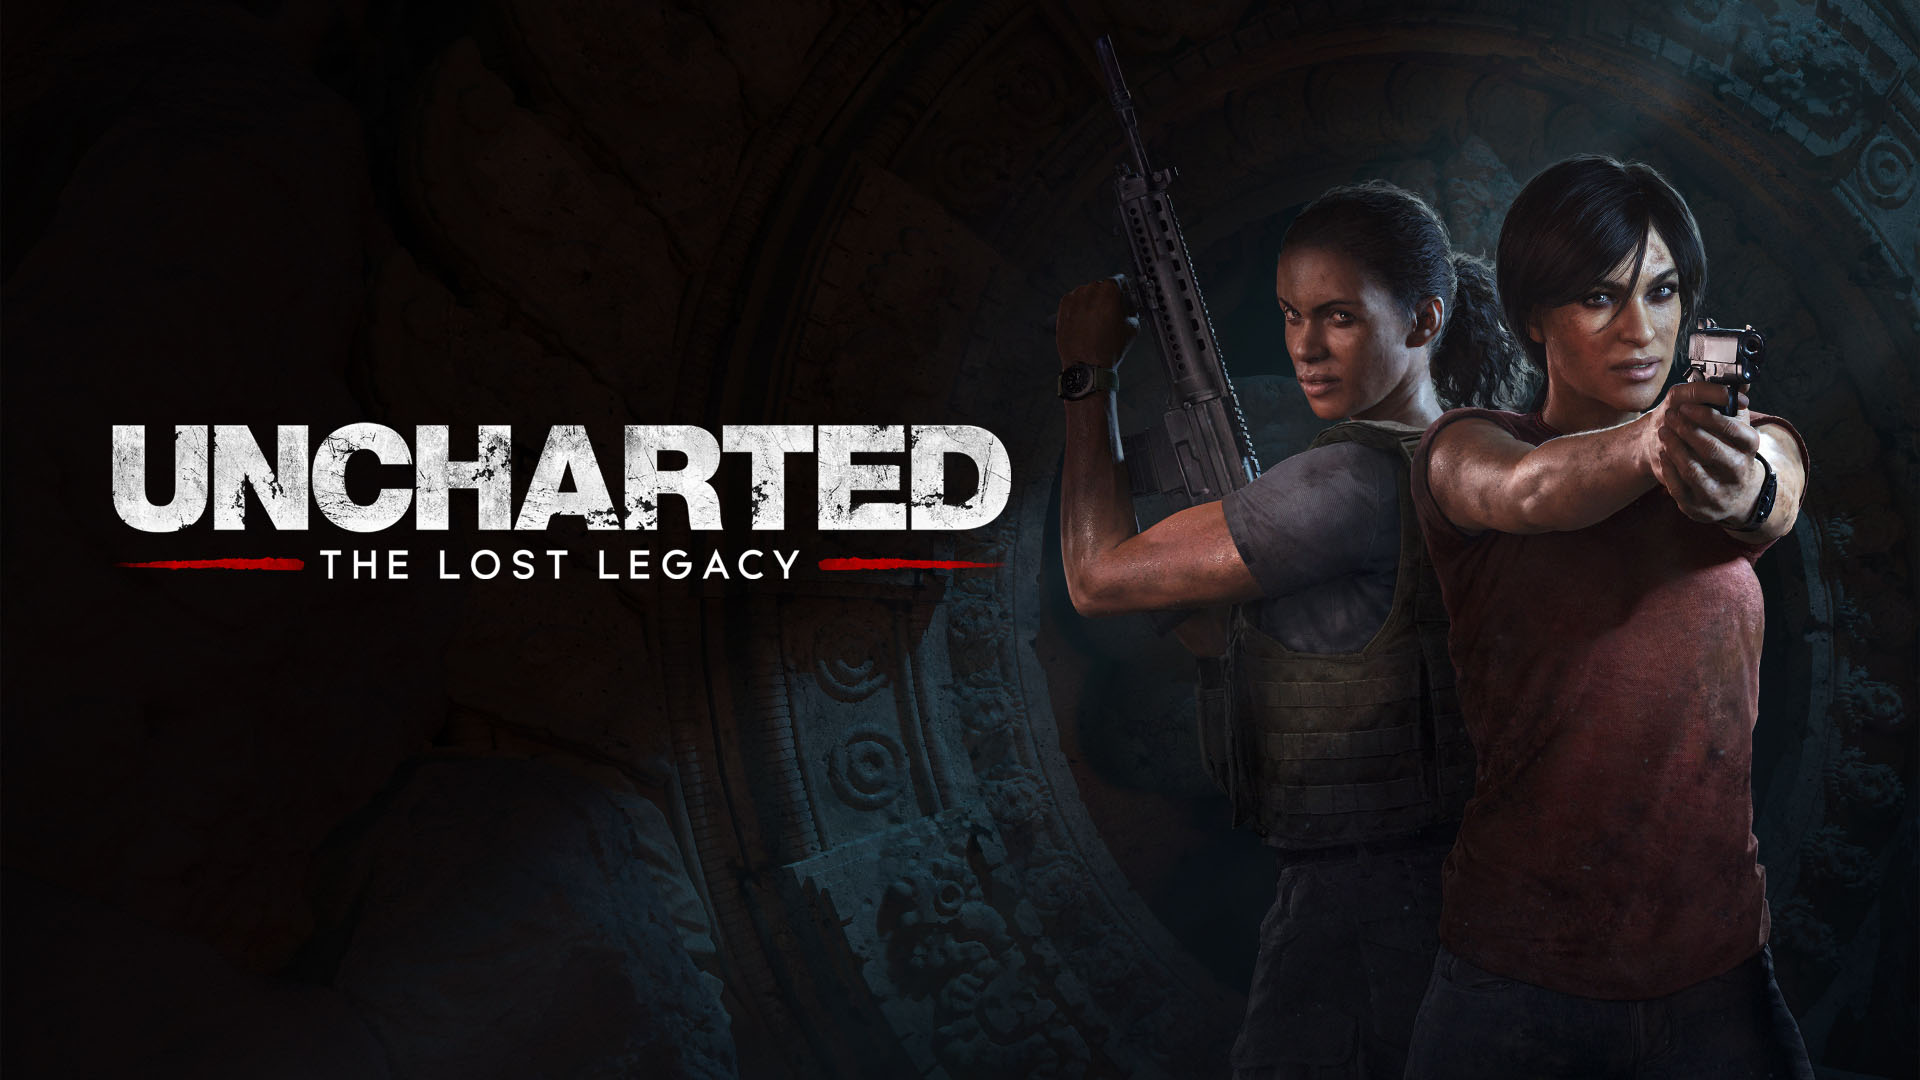 UNCHARTED THE LOST LEGACY pc download